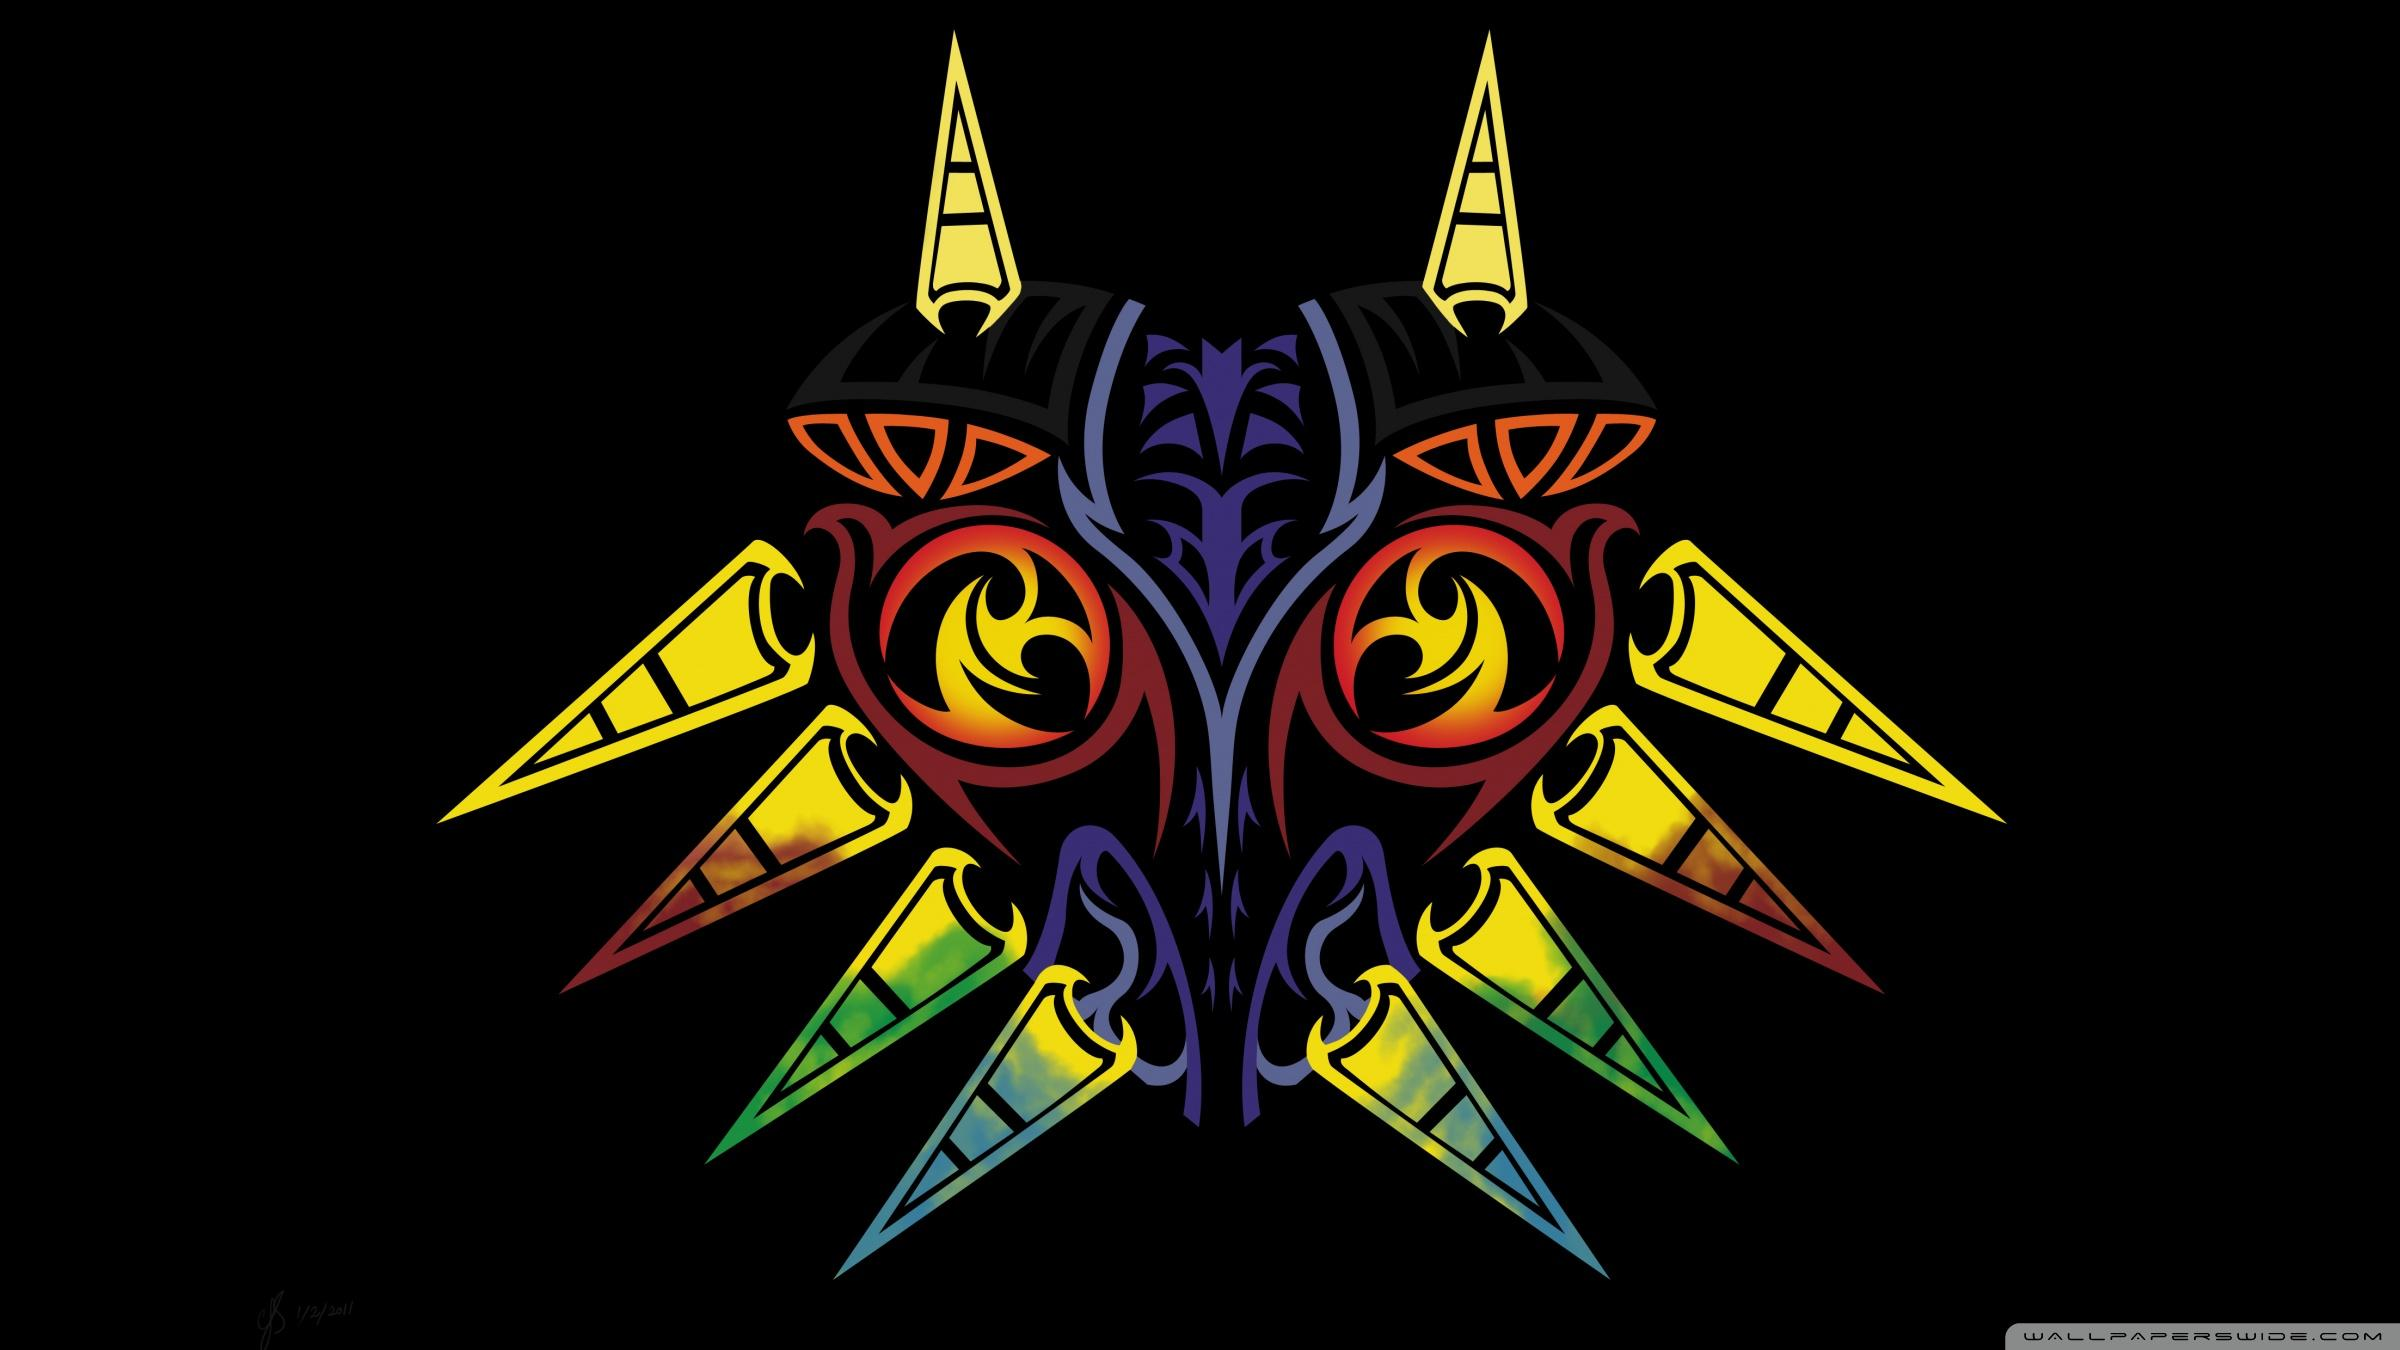 Zelda Majoras Mask Wallpapers Group